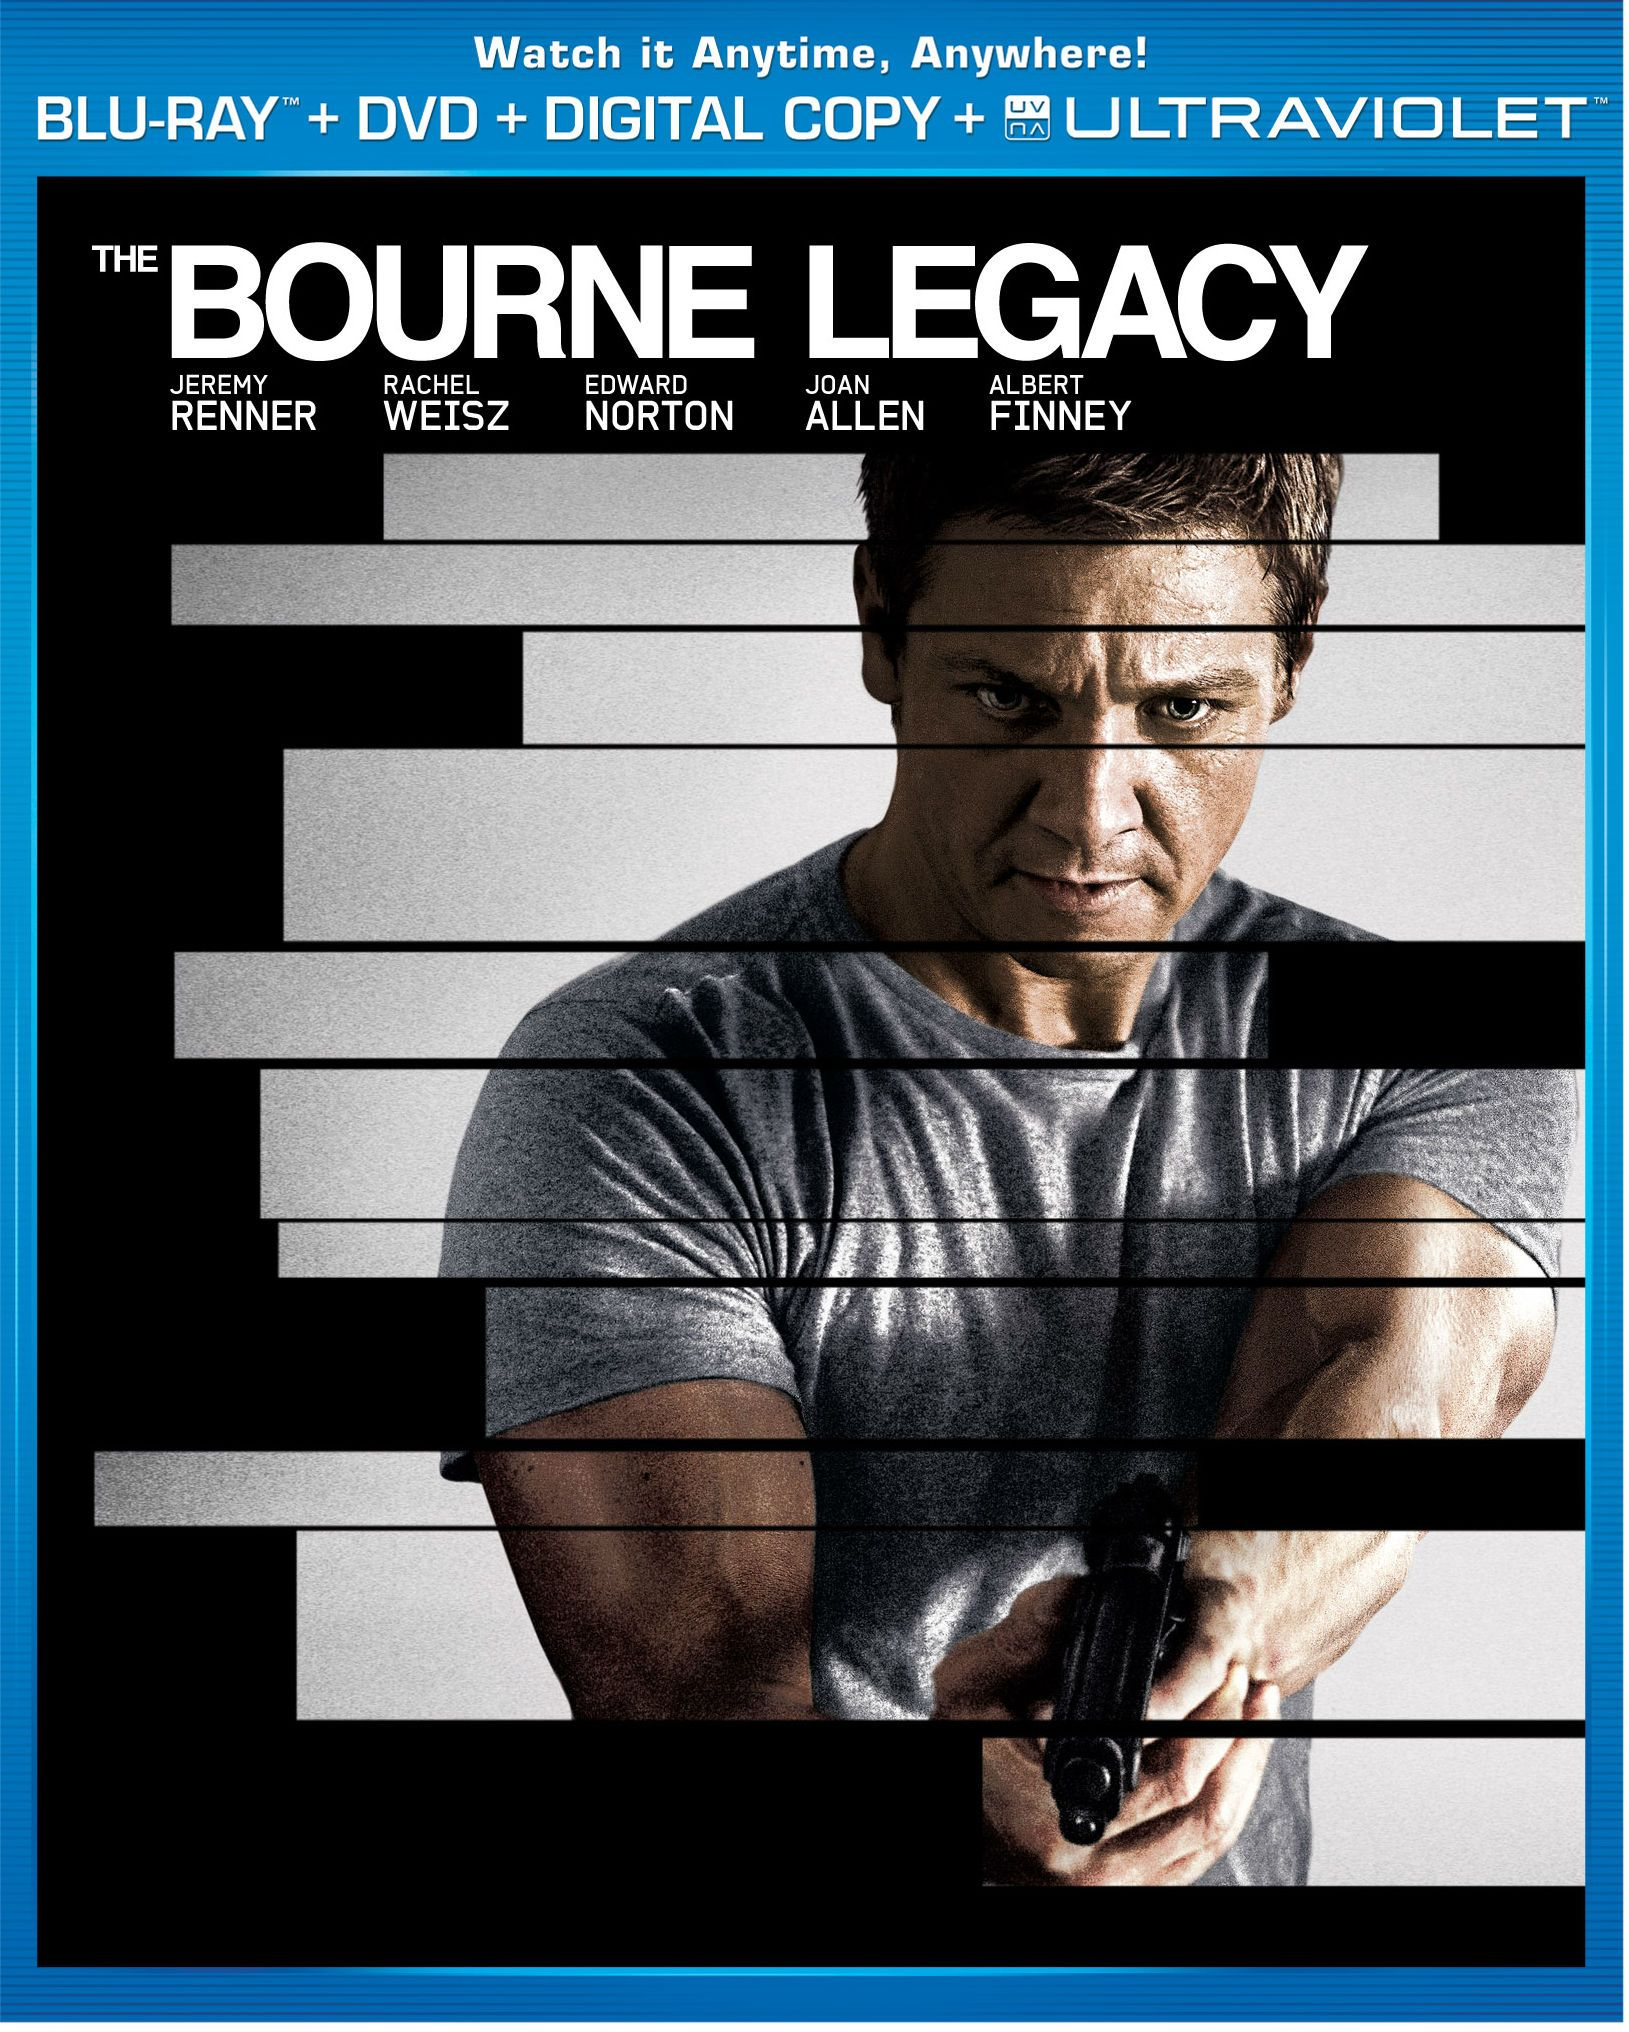 THE BOURNE LEGACY Blu-ray Review. THE BOURNE LEGACY Stars ...